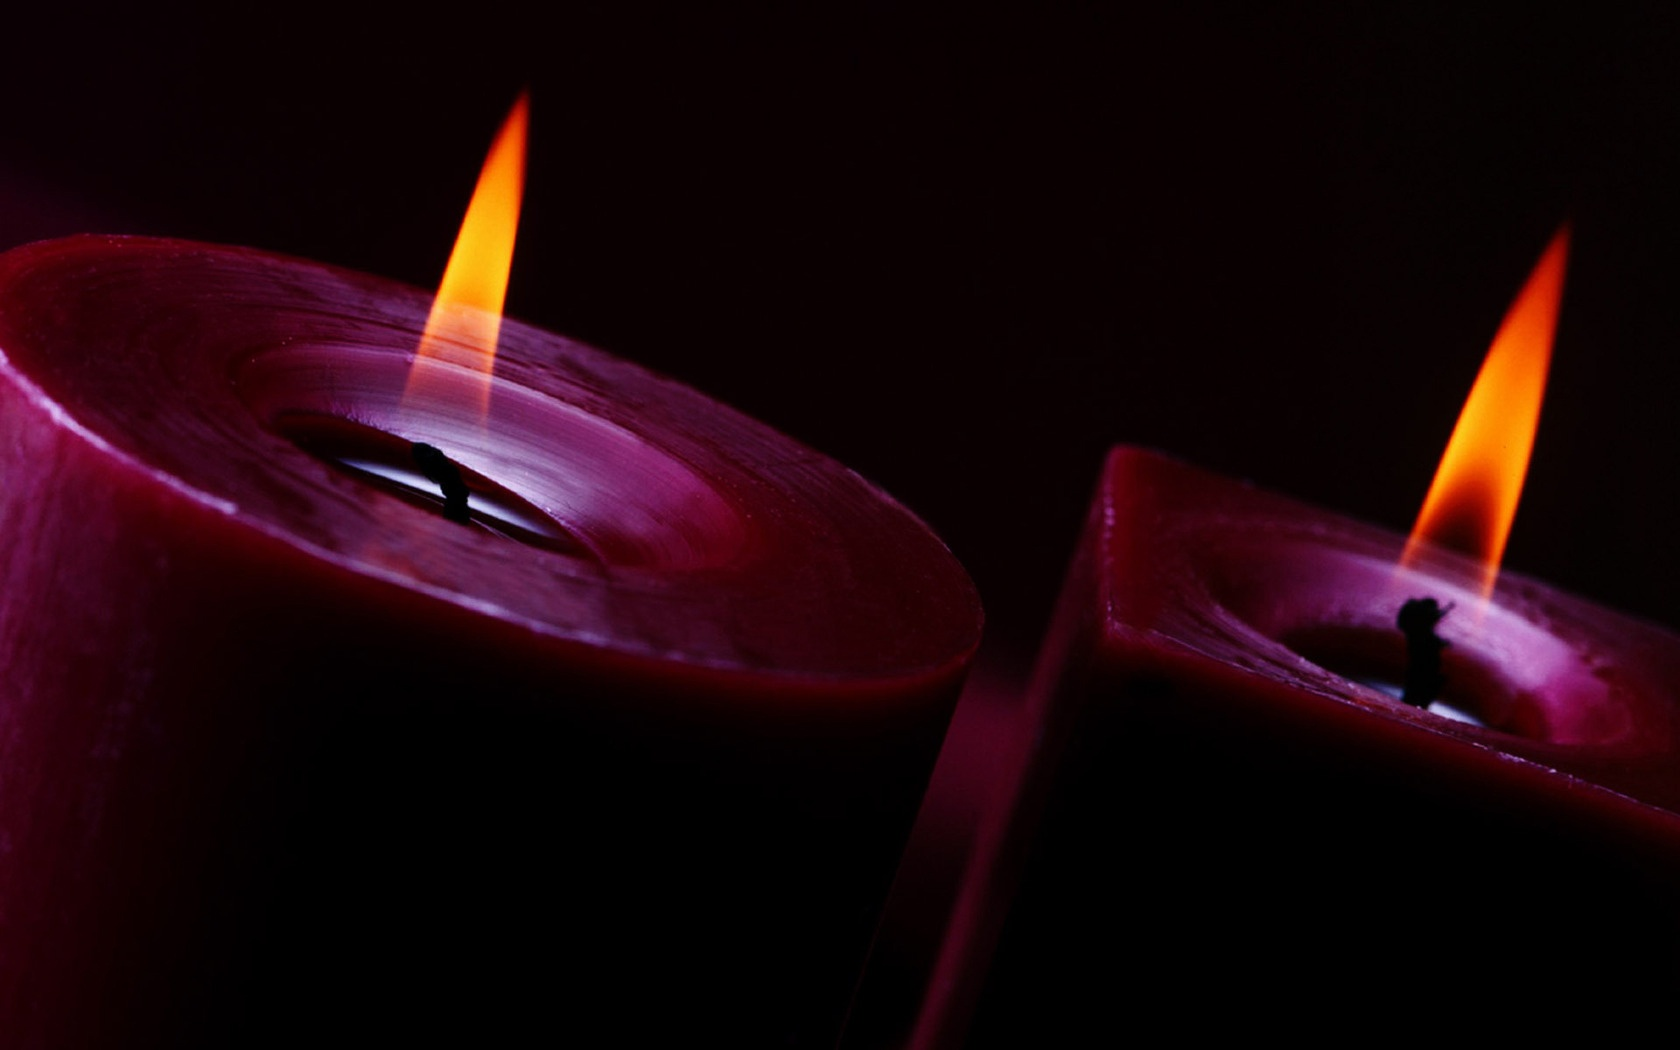 Candle Art Hd Wallpaper: 28 Wonderful HD Candle Wallpapers